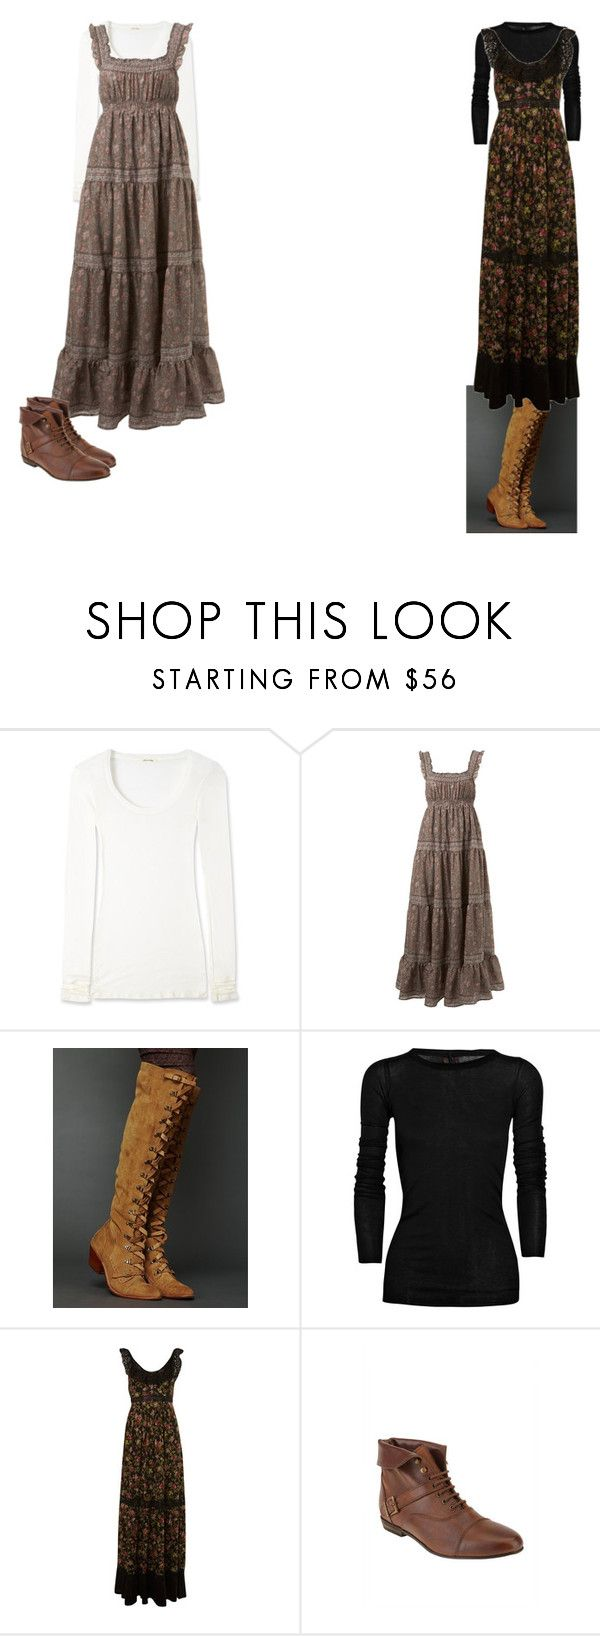 """Modest Outfits"" by christianmodesty ❤ liked on Polyvore featuring American Vintage, Miss Selfridge, Free People, Rick Owens and Deena & Ozzy"